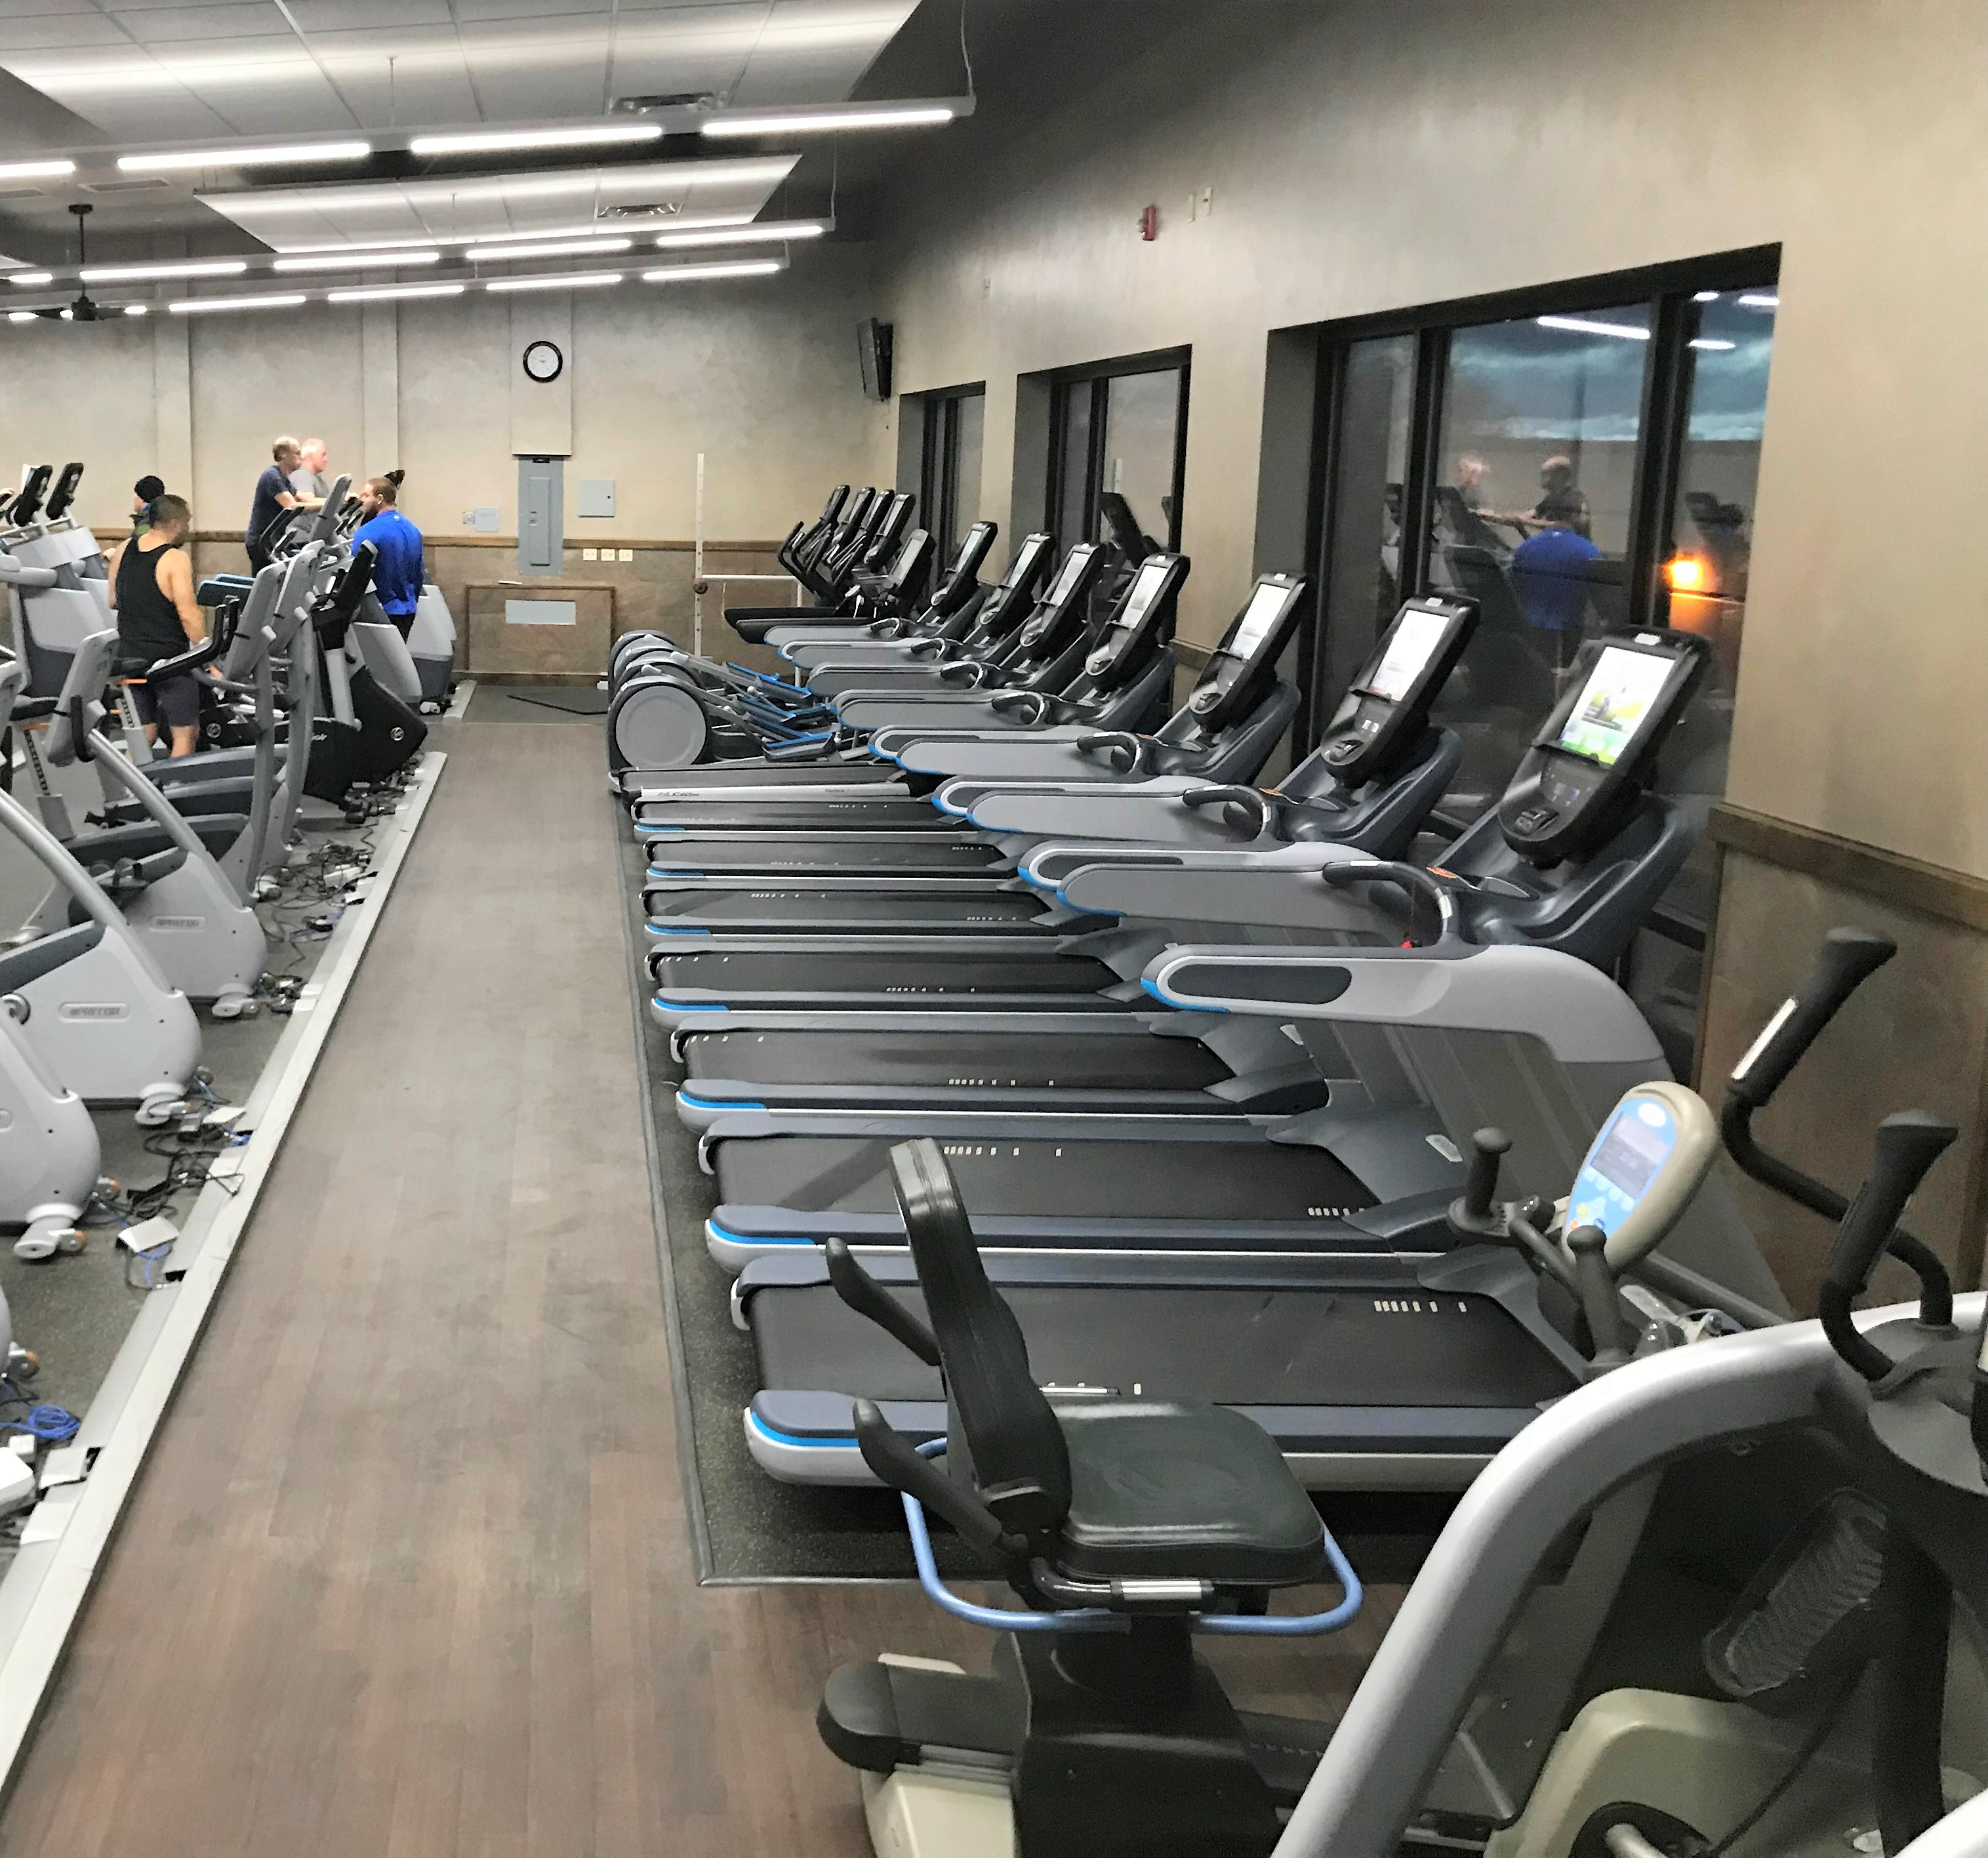 Delivery & Installation For Harbor Square Athletic Club In